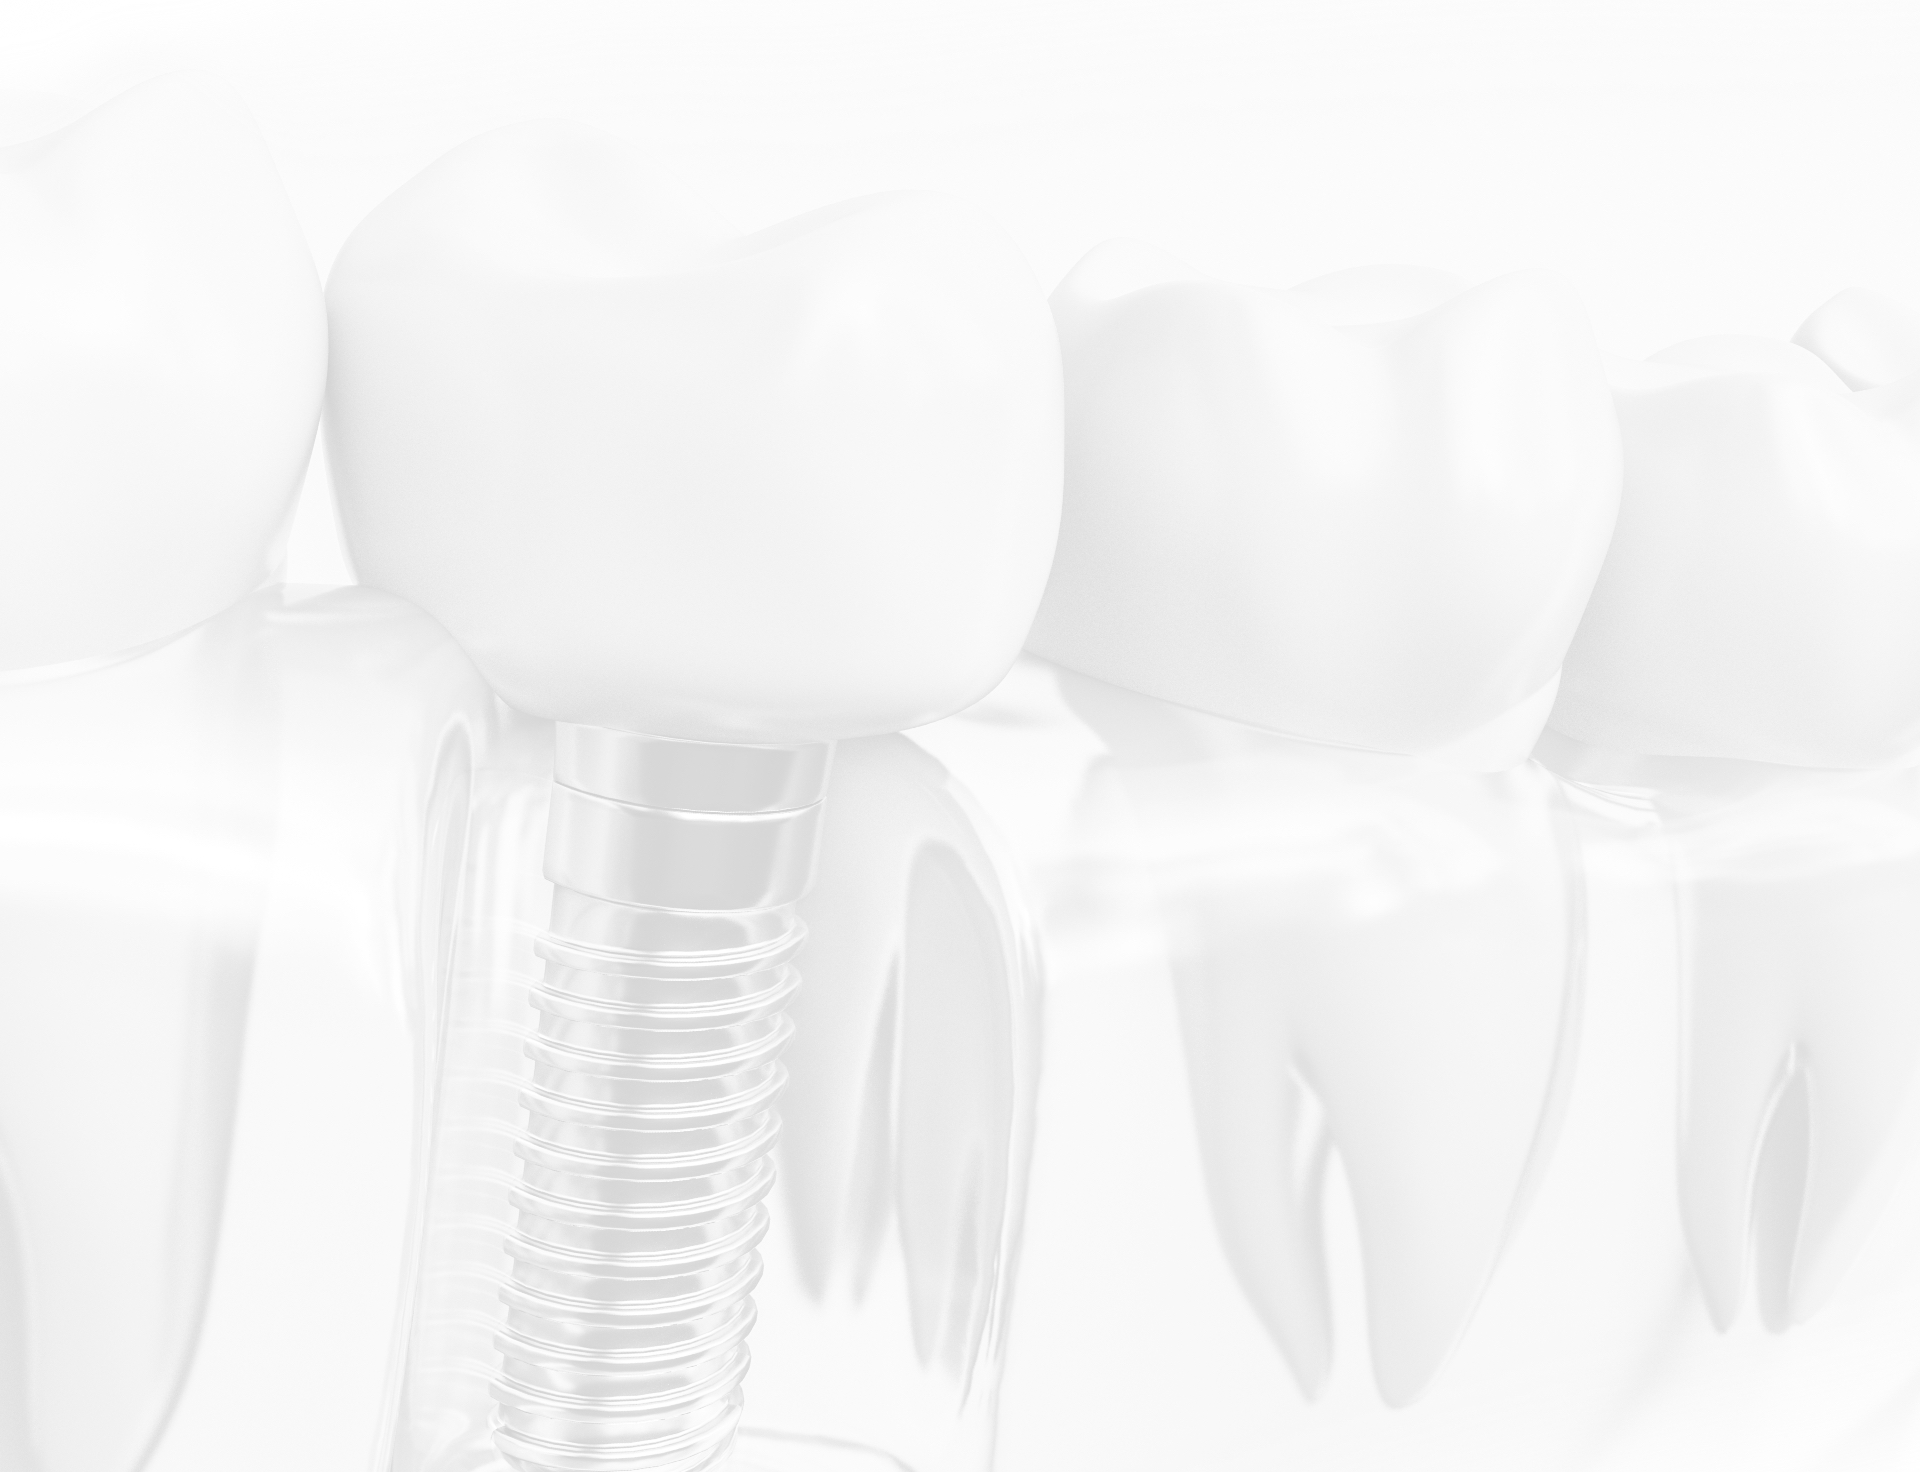 Black and white faded image of dental implant on implant post with transparent gums